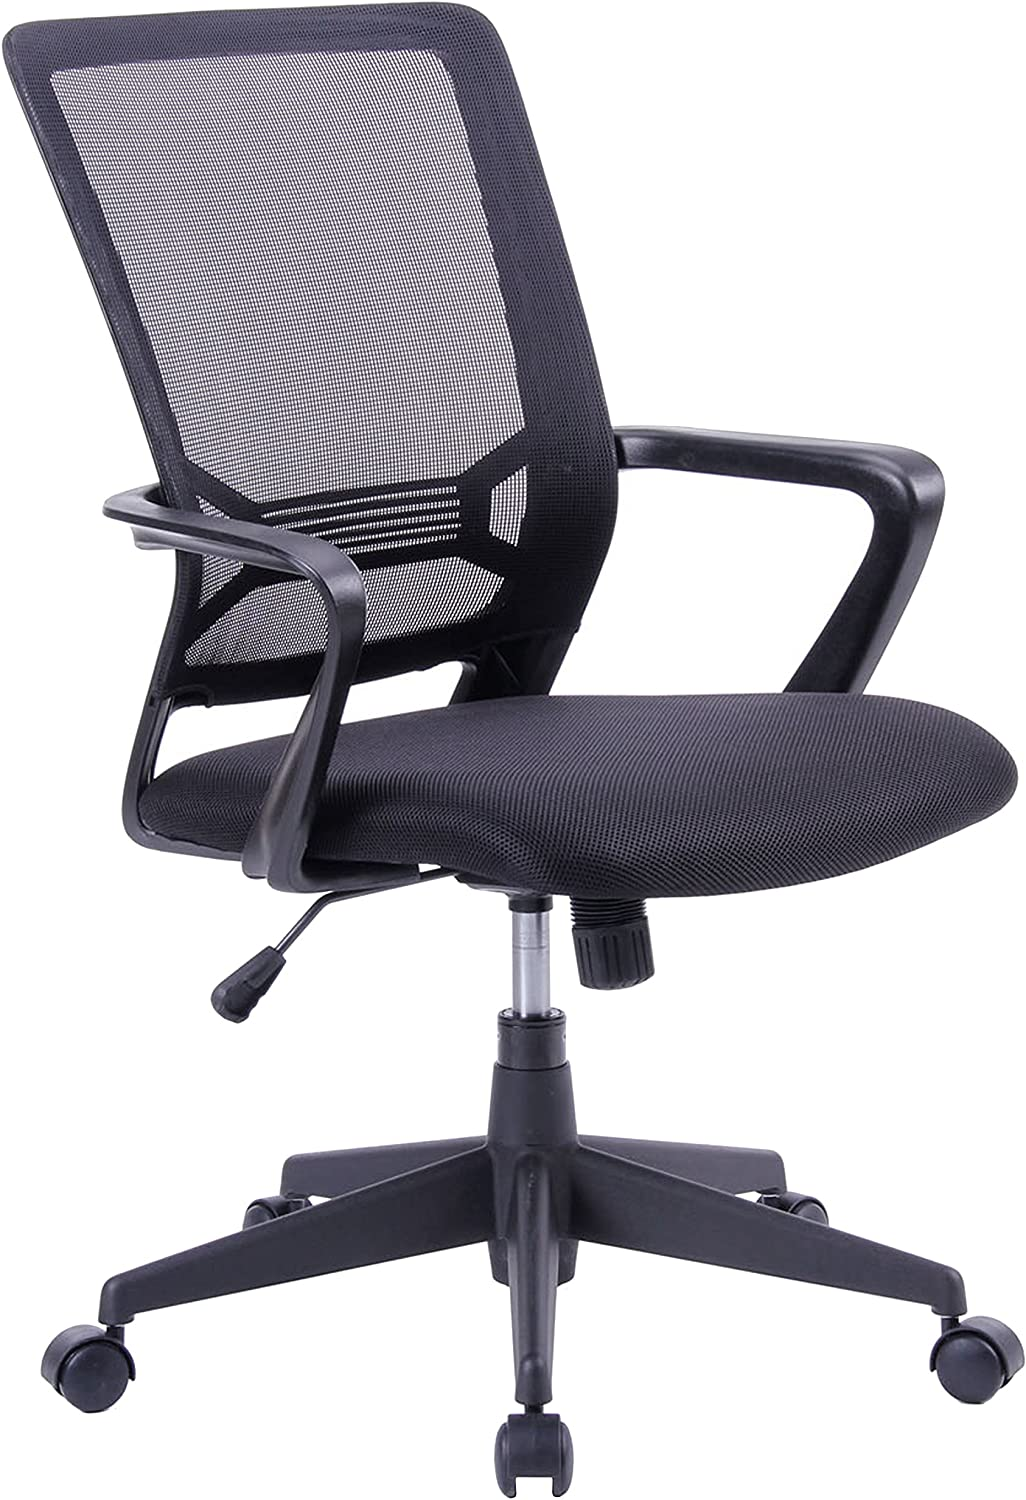 Porthos Home MKC008A BLK Angelina Adjustable Office Chair Black